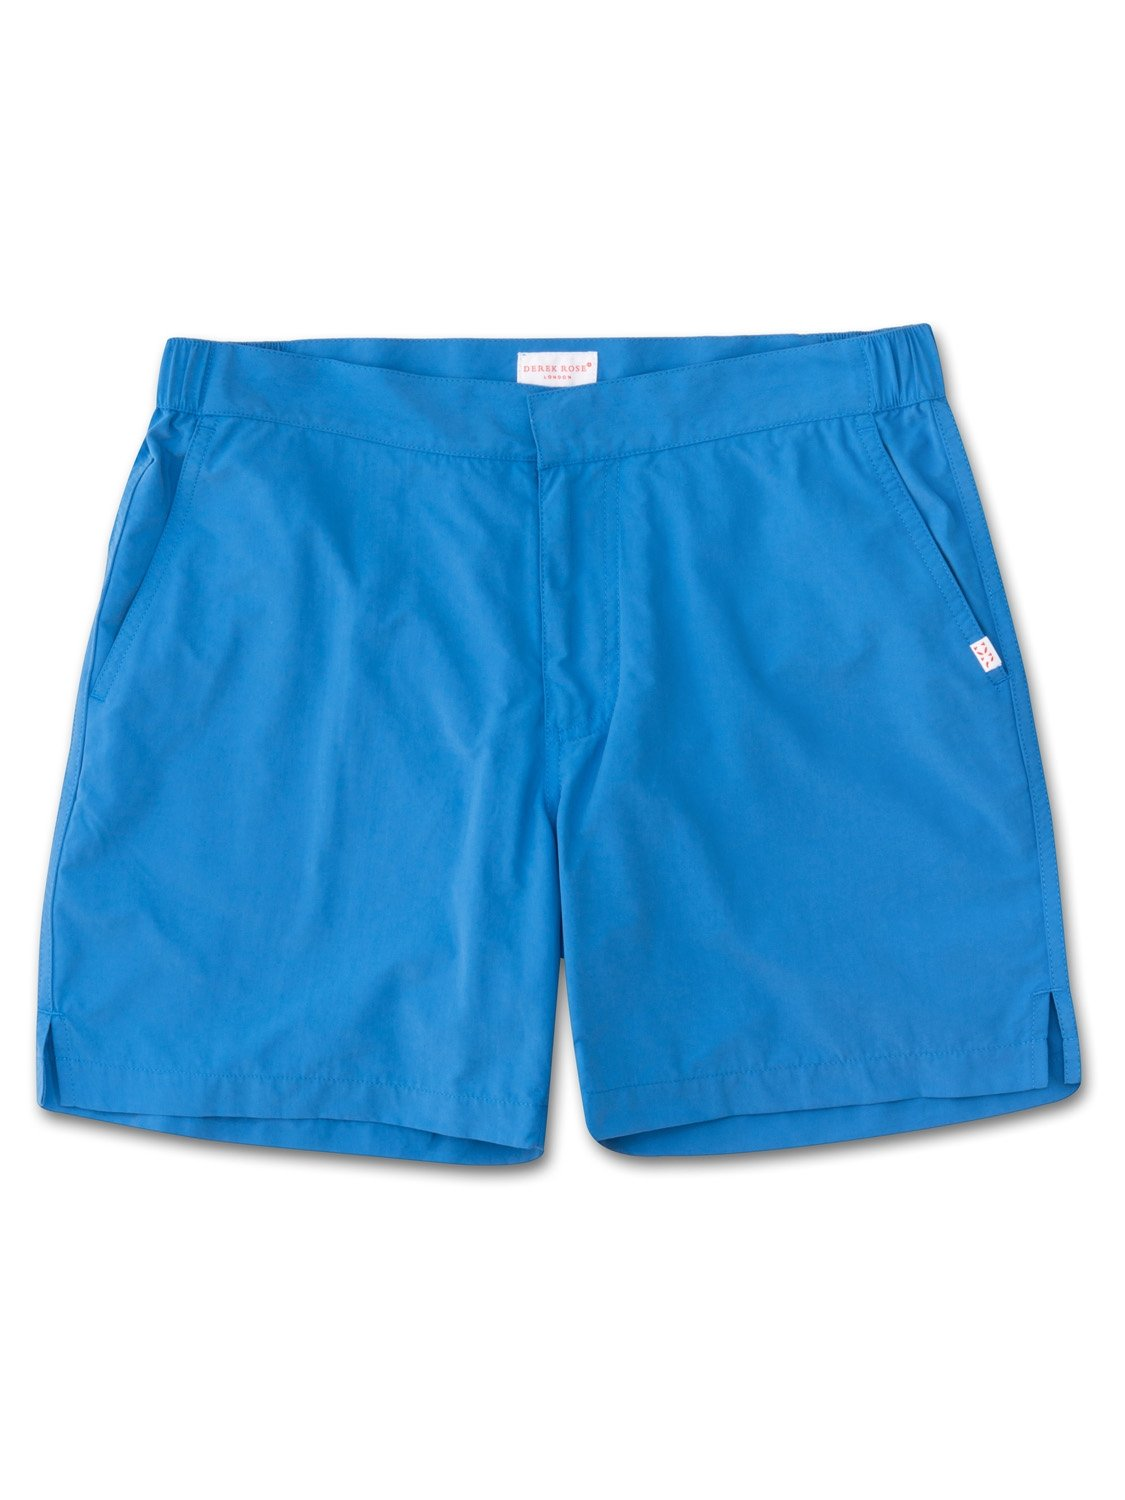 Men's Modern Fit Swim Shorts Aruba Blue